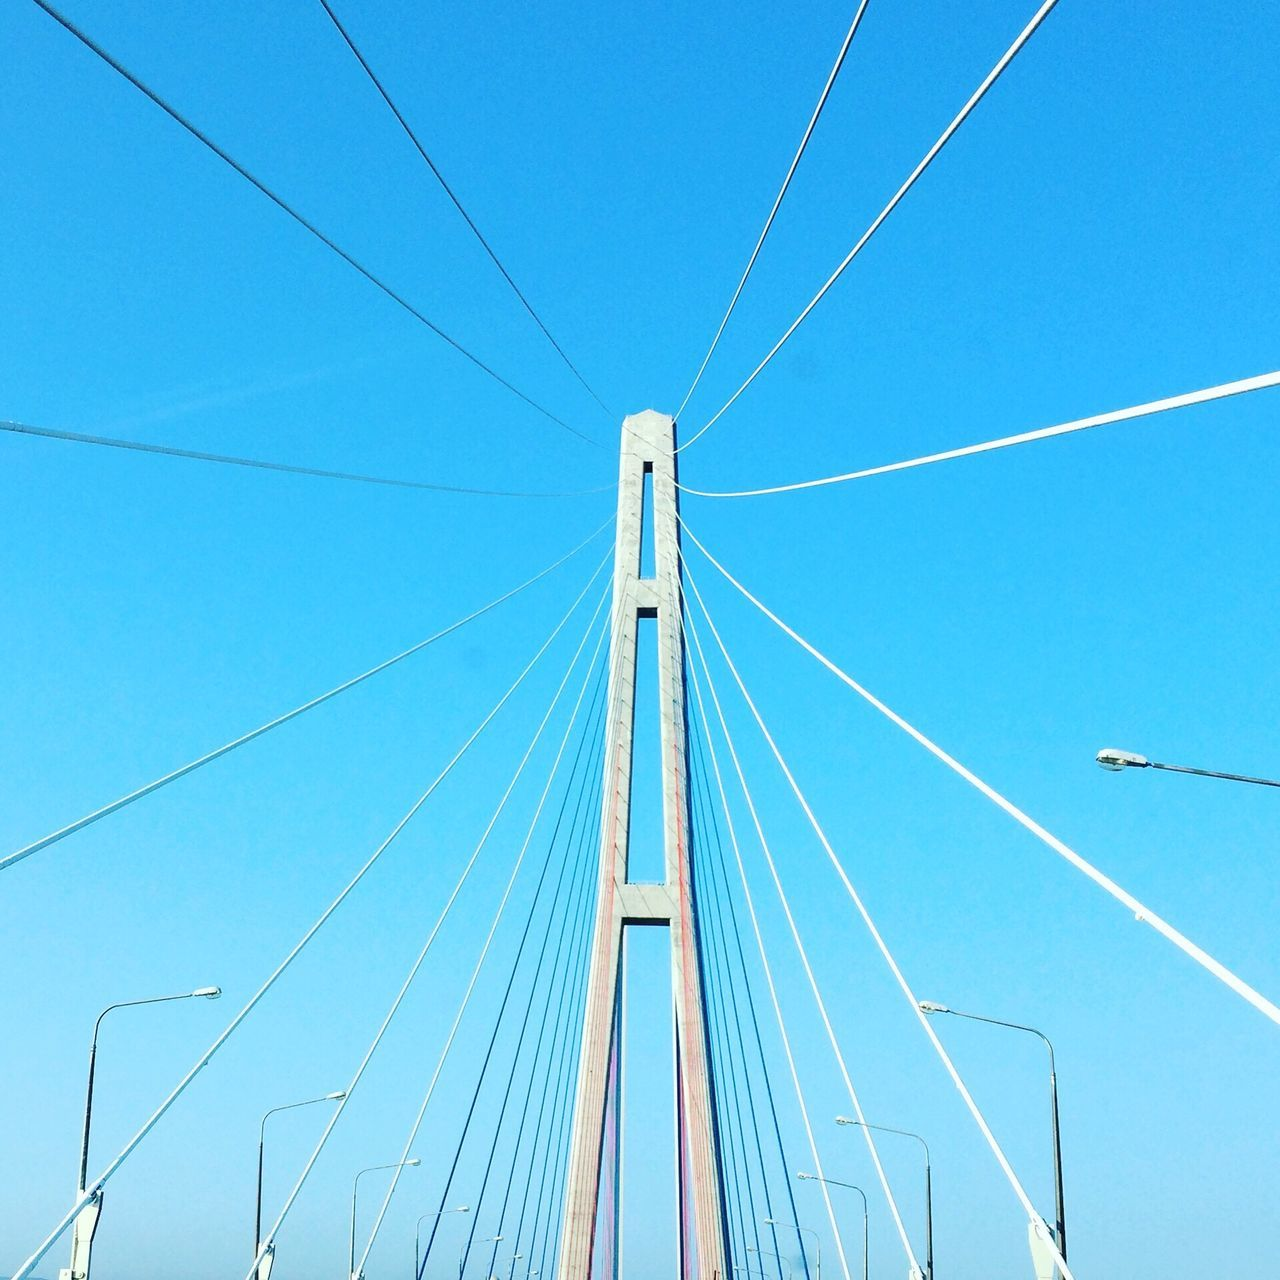 cable, connection, blue, day, transportation, power line, low angle view, outdoors, clear sky, no people, suspension bridge, bridge - man made structure, built structure, parallel, line, sky, architecture